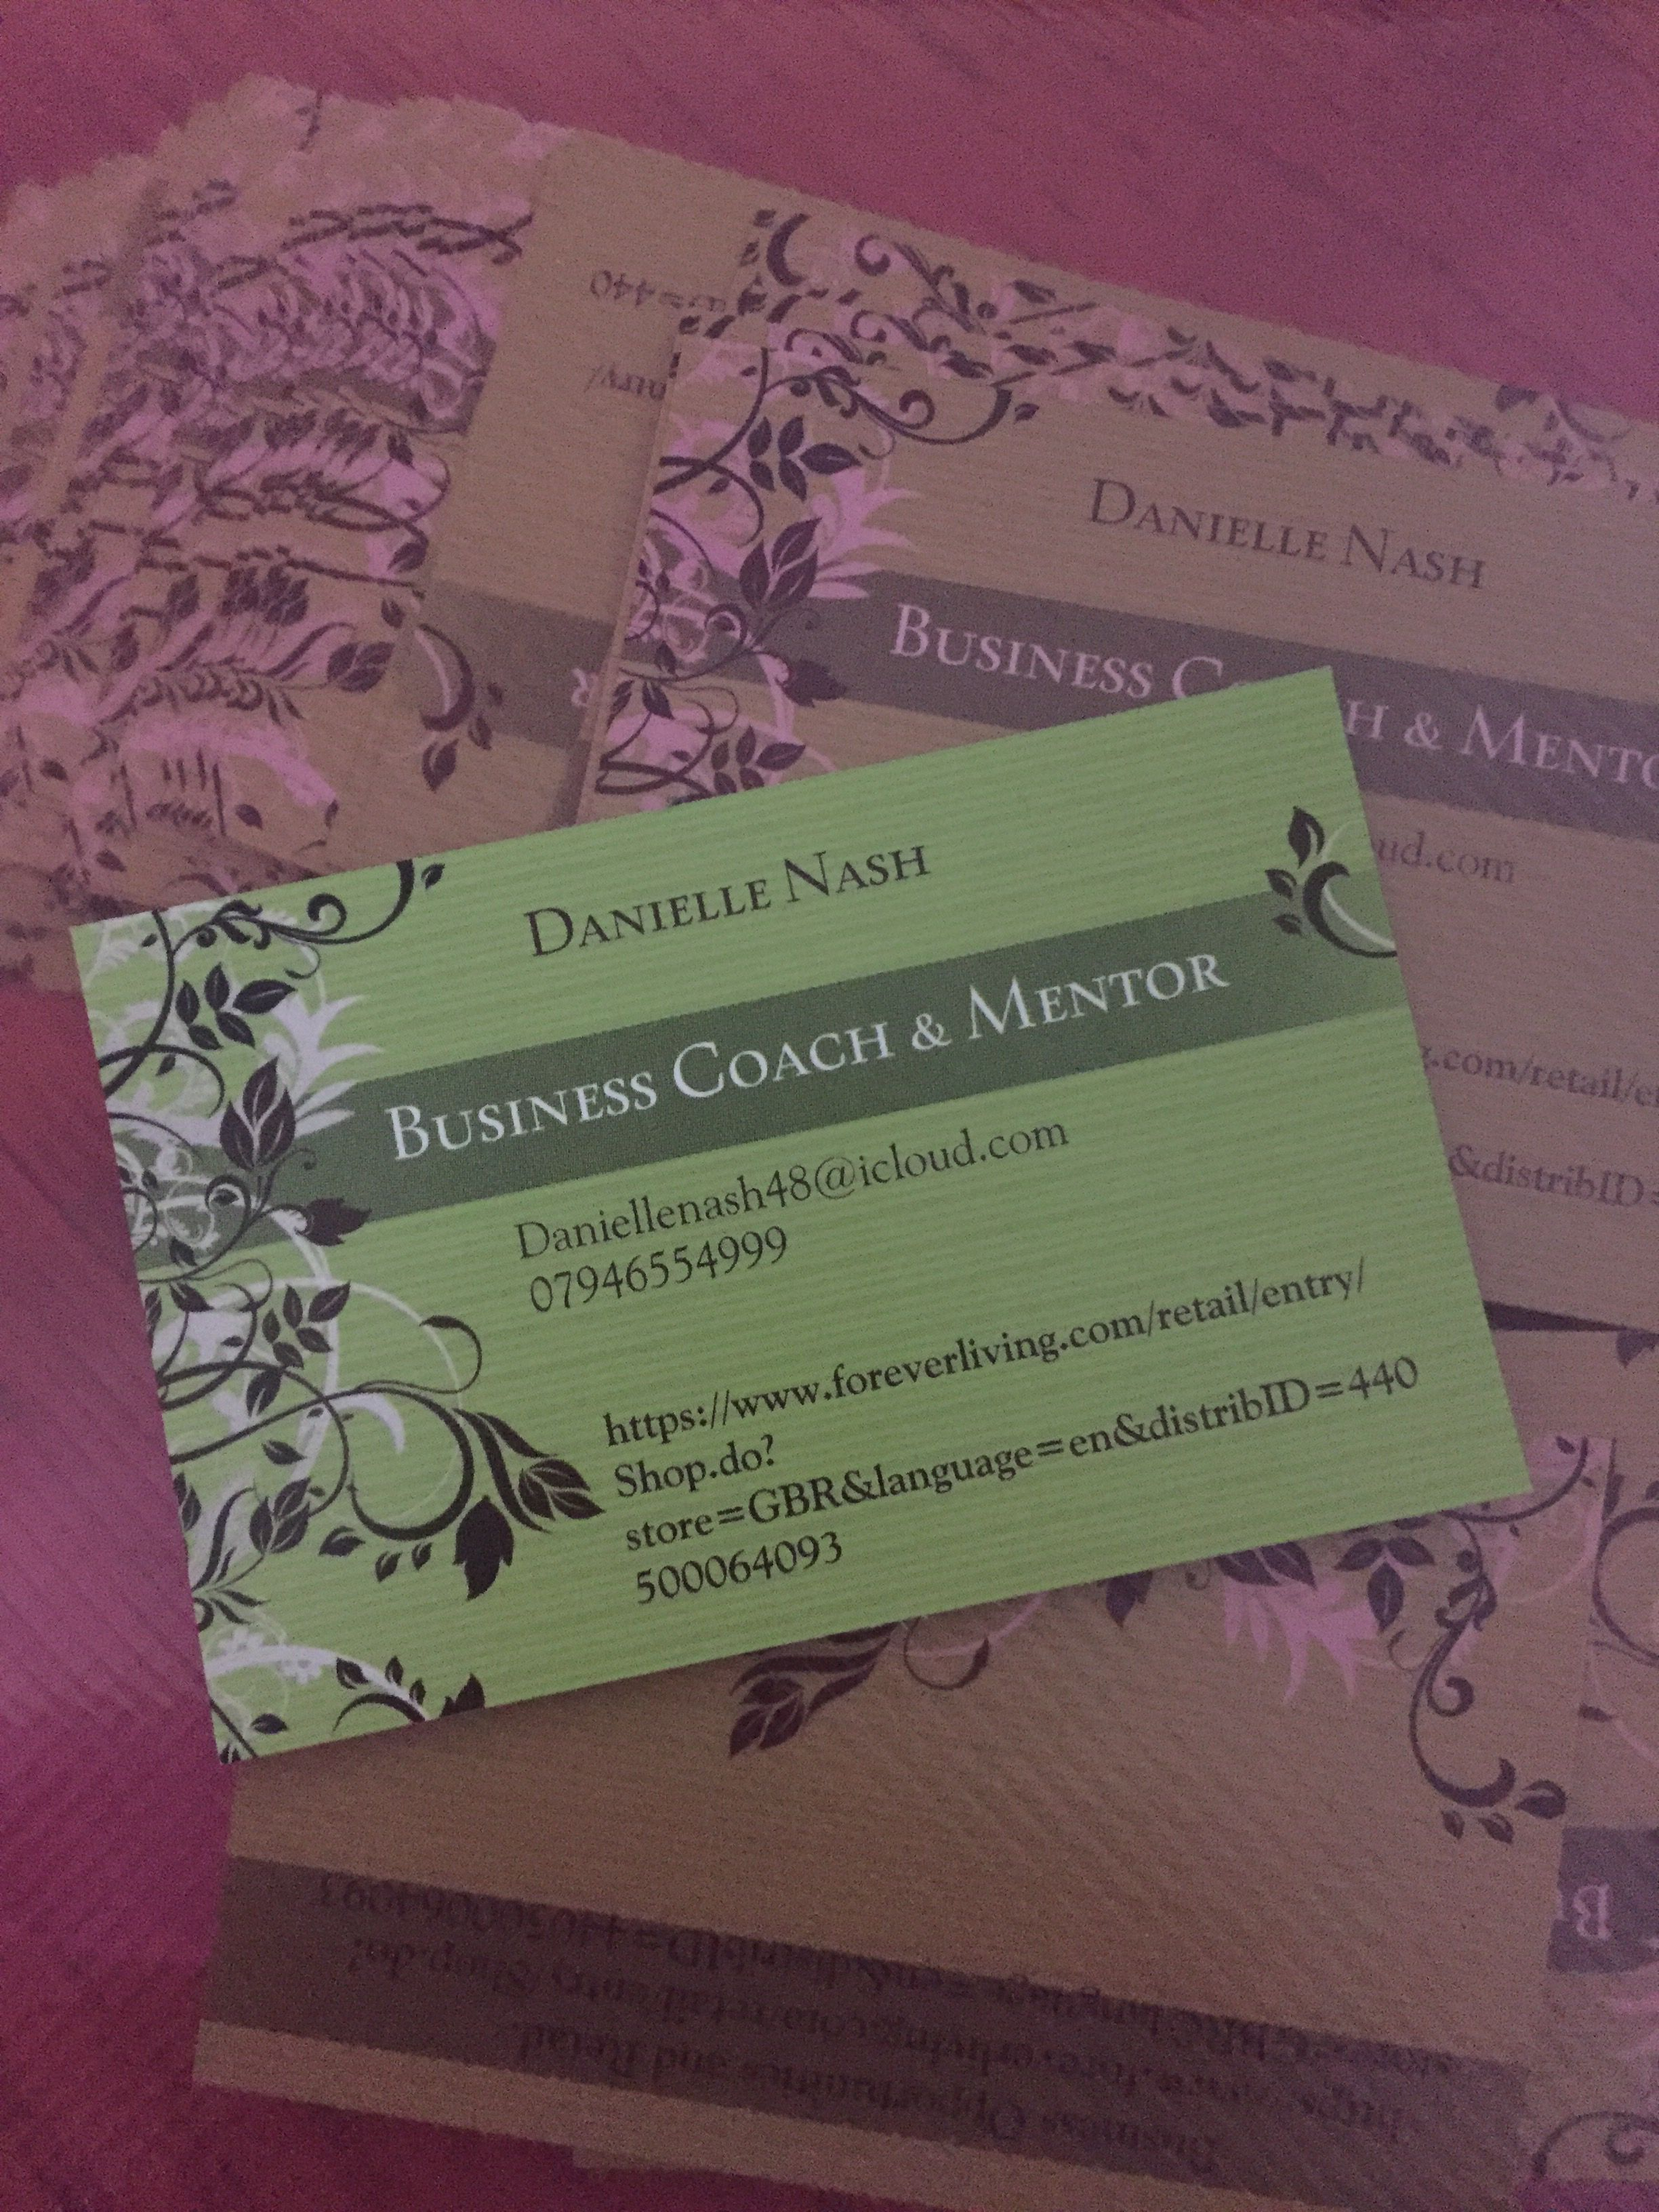 My business cards https://www.foreverliving.com/retail/entry/Shop.do ...